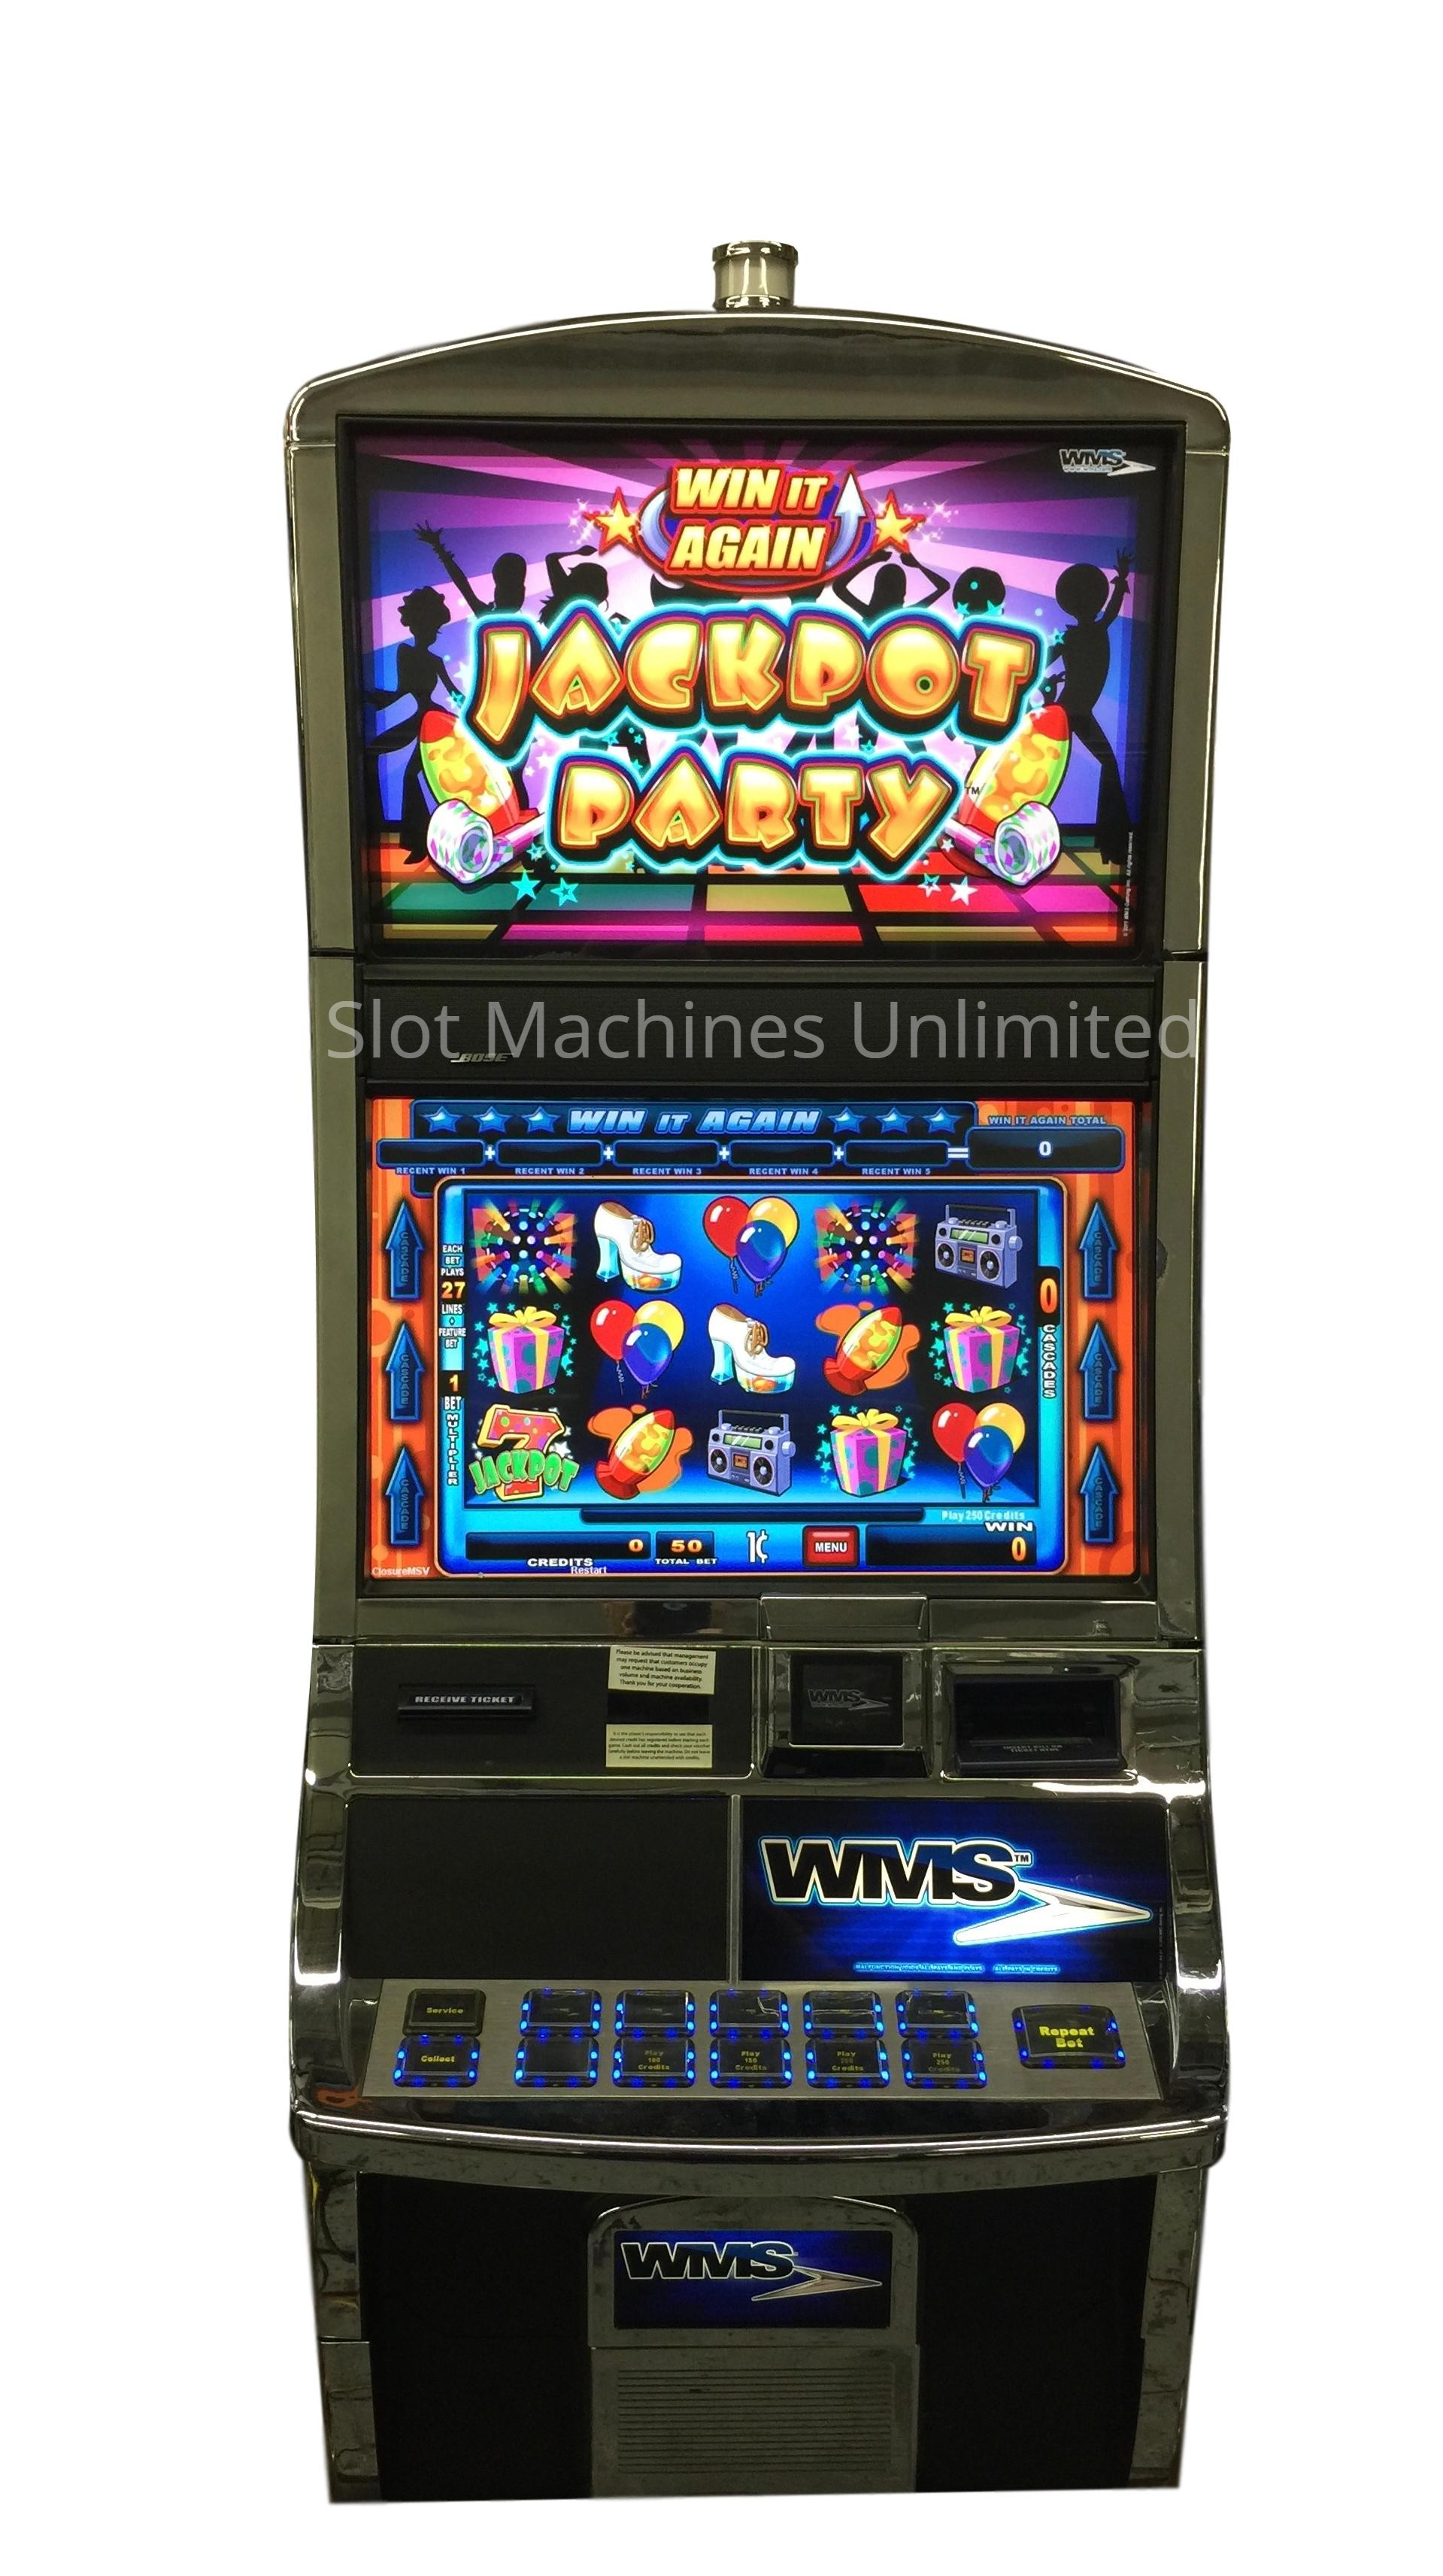 Jackpot Slot Machine